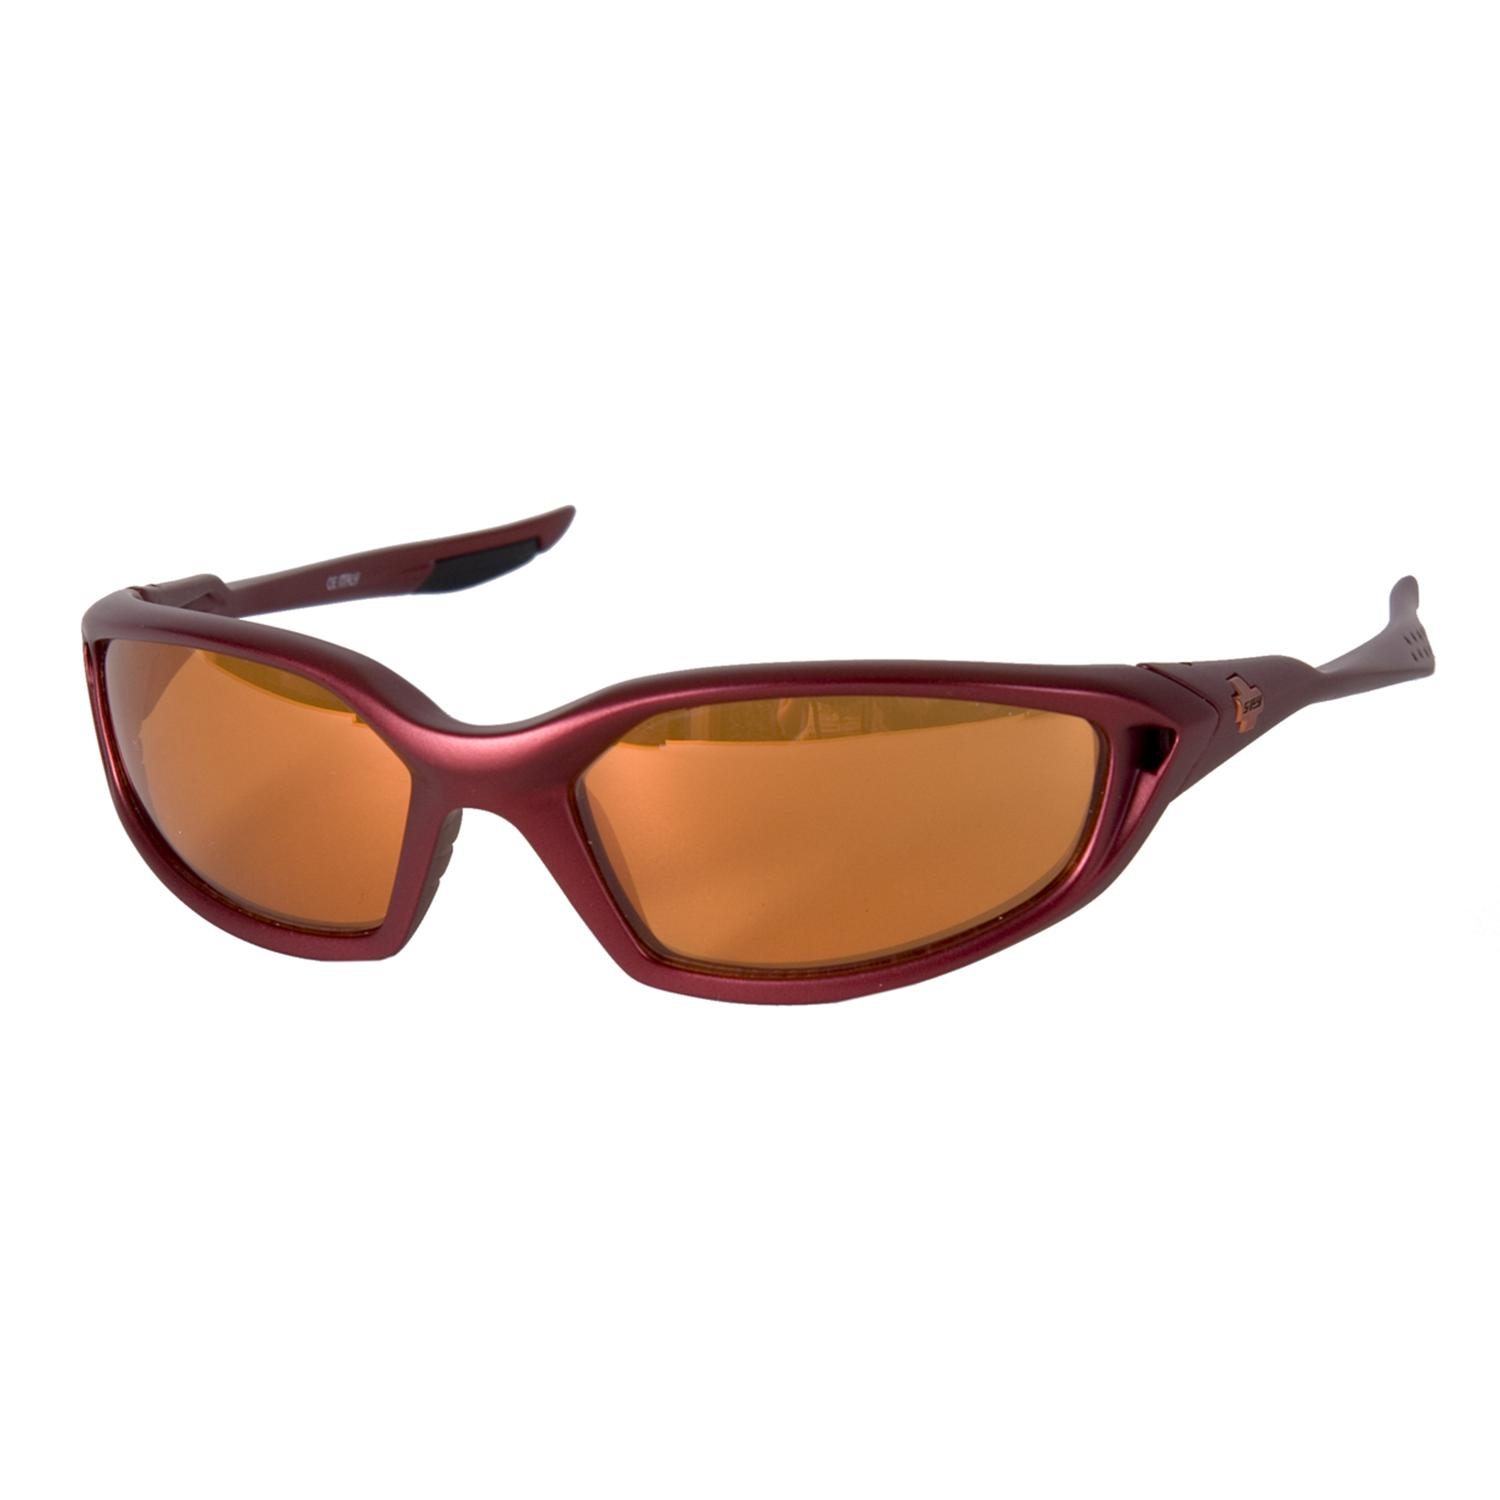 100% free online dating in via del mar Costa del mar tasman sea sunglasses in matte gray with green mirror, polarized plastic (580) lenses  free shipping on orders over $49 and free returns free .